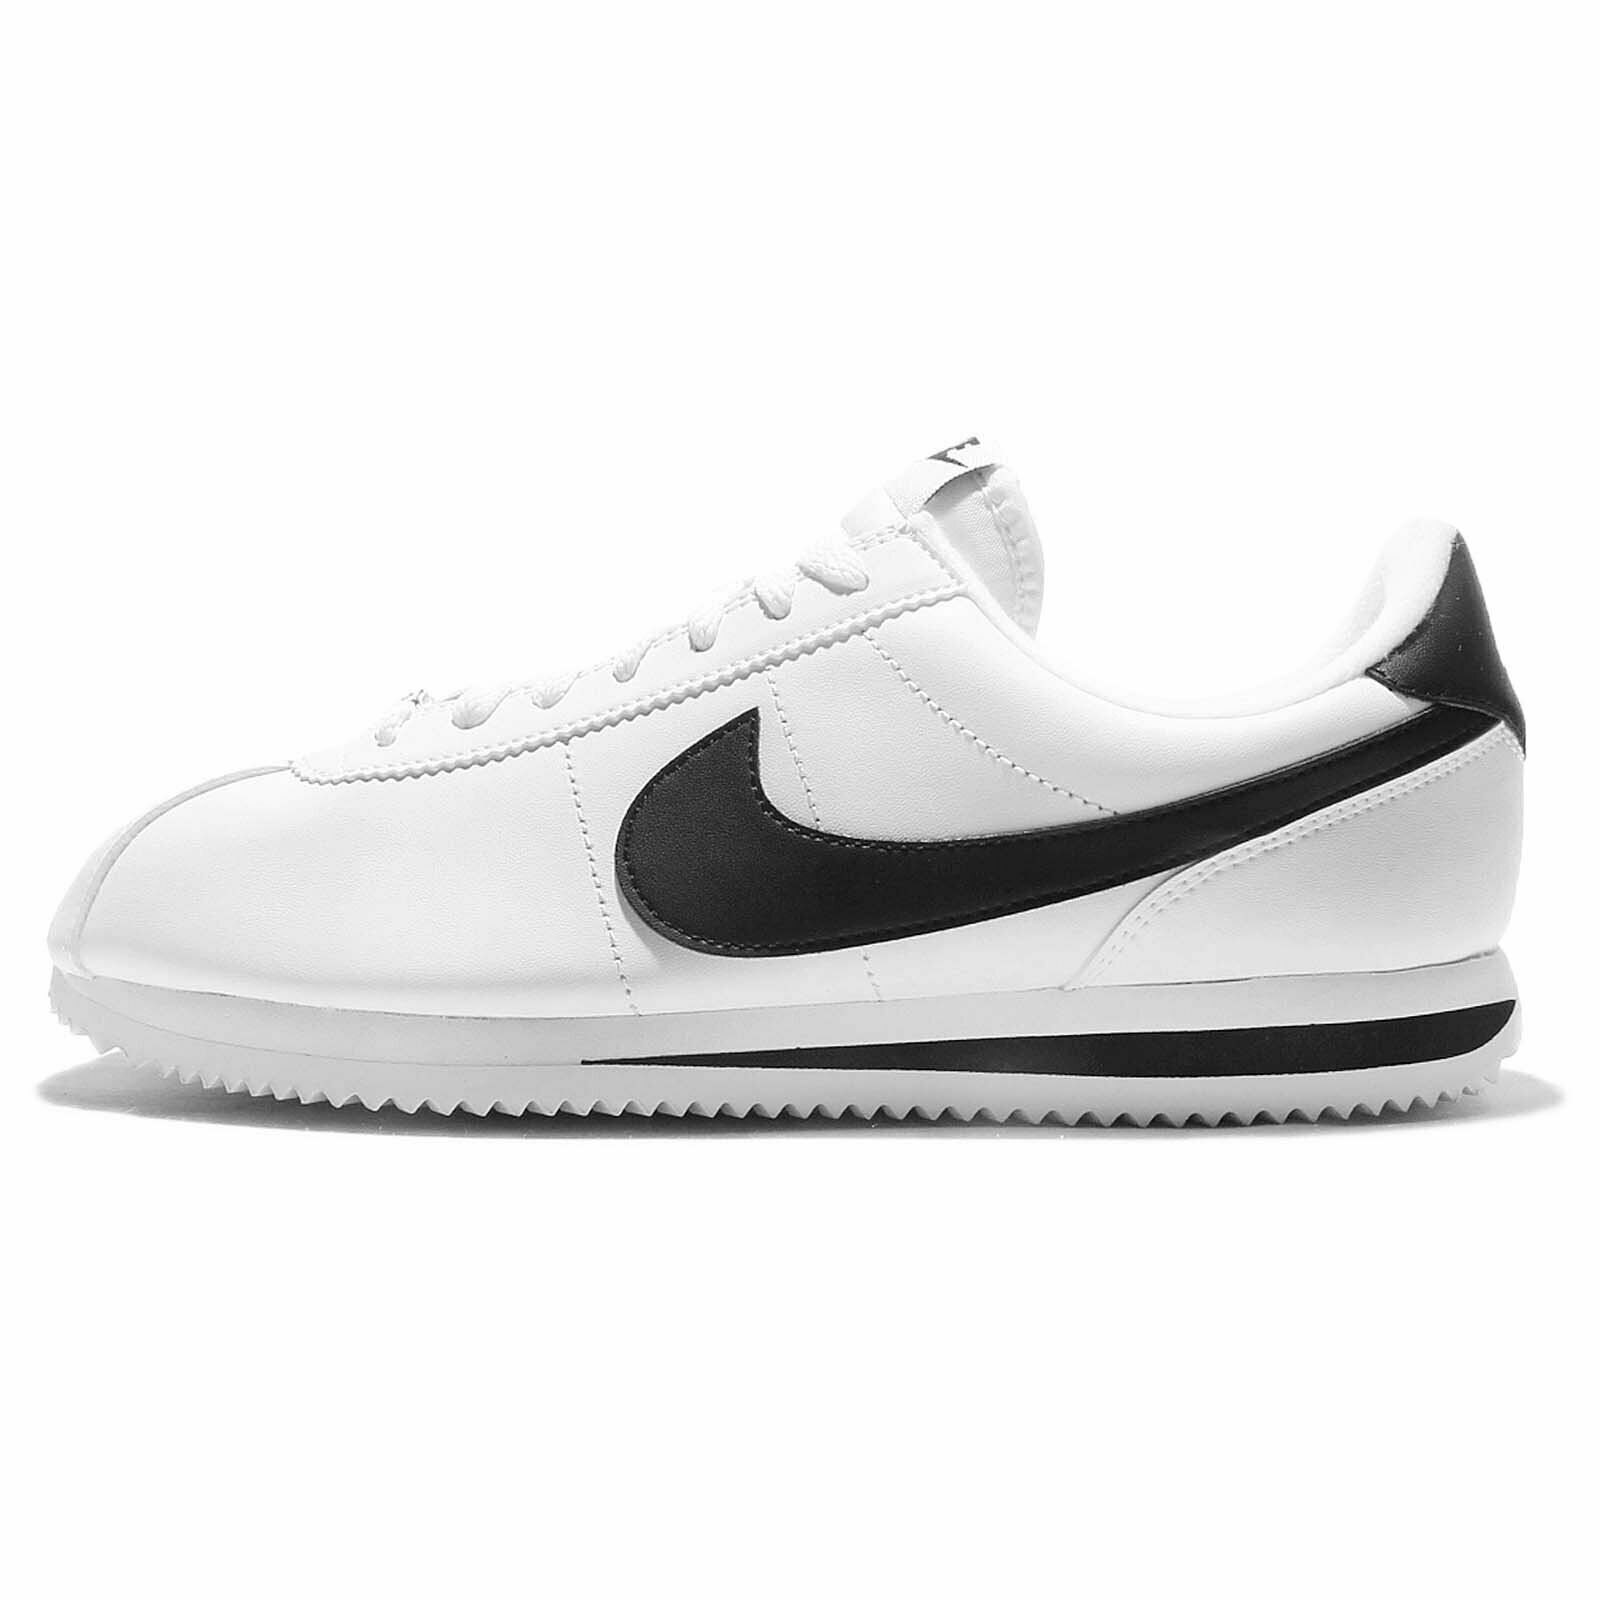 Nike Mens Cortez Basic Leather Casual shoes White Metallic Silver Black 12.5